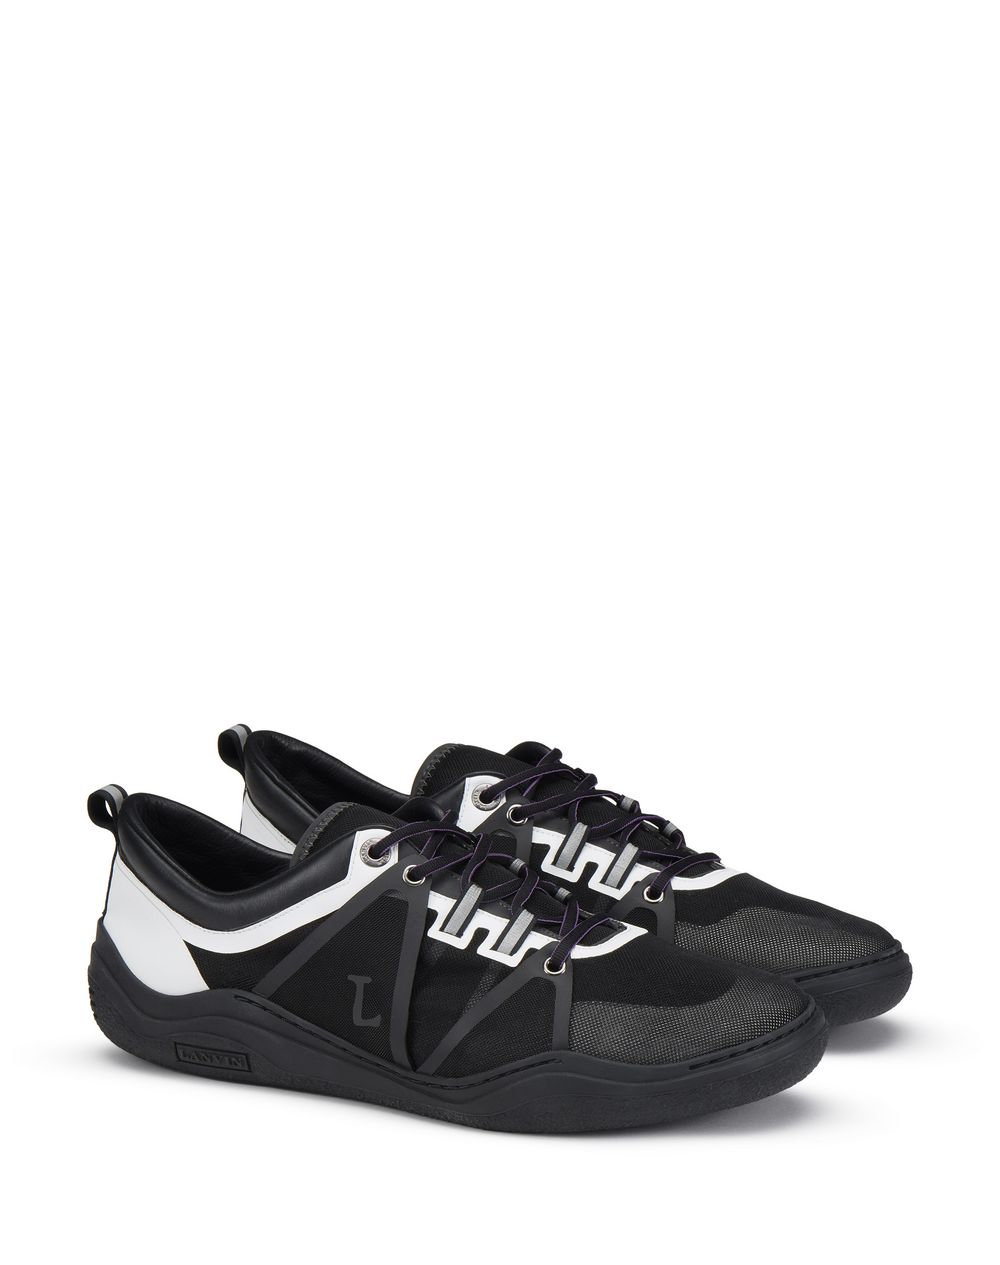 SEMI-TRANSPARENT BLACK AND WHITE DIVING SNEAKER - Lanvin